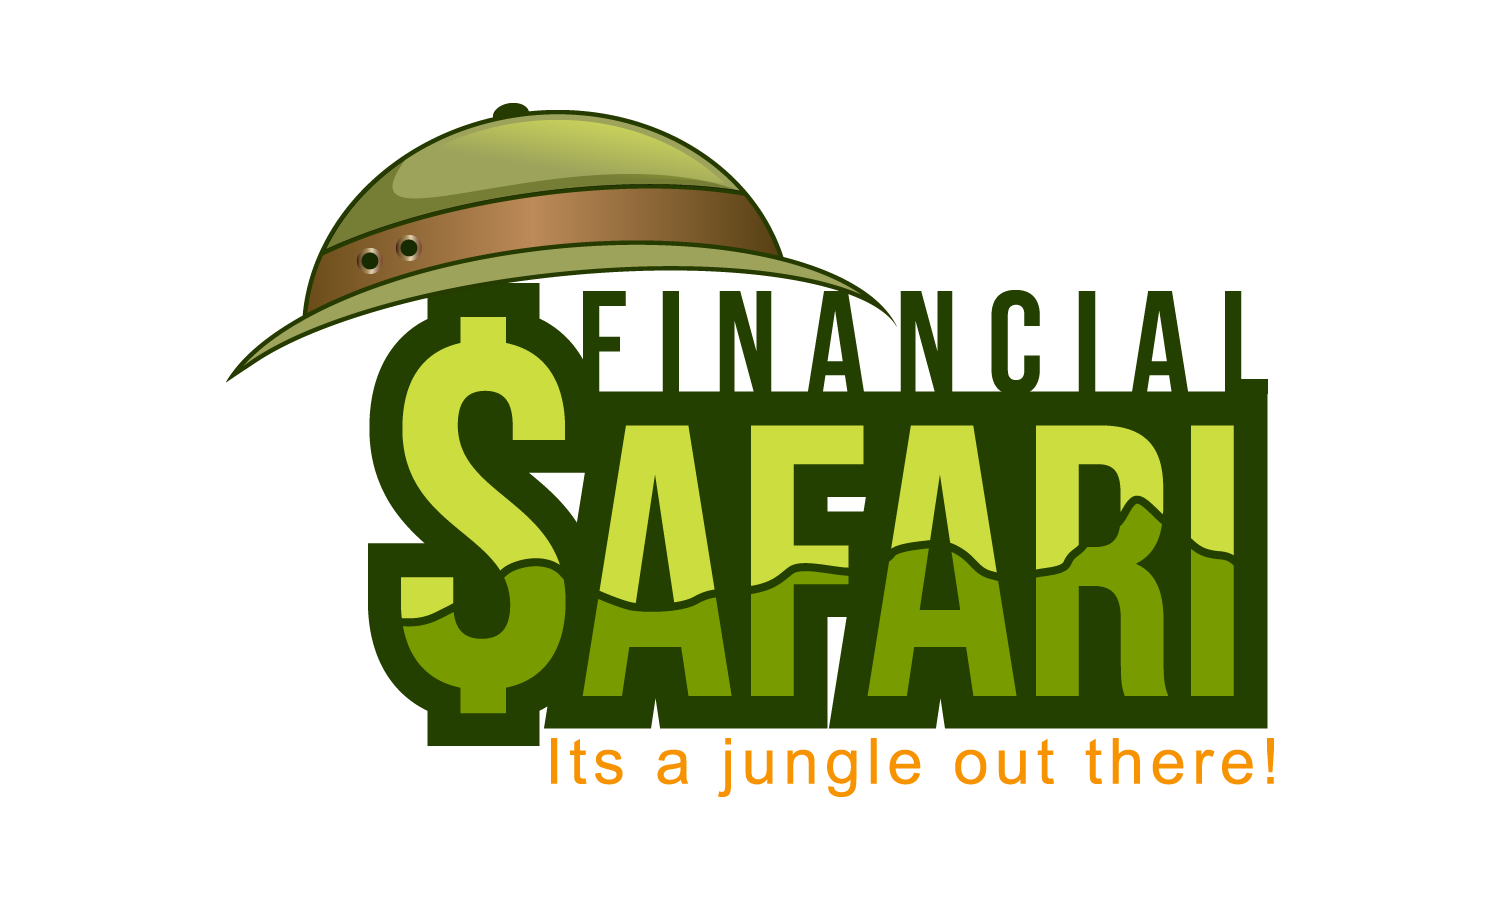 Financial Safari